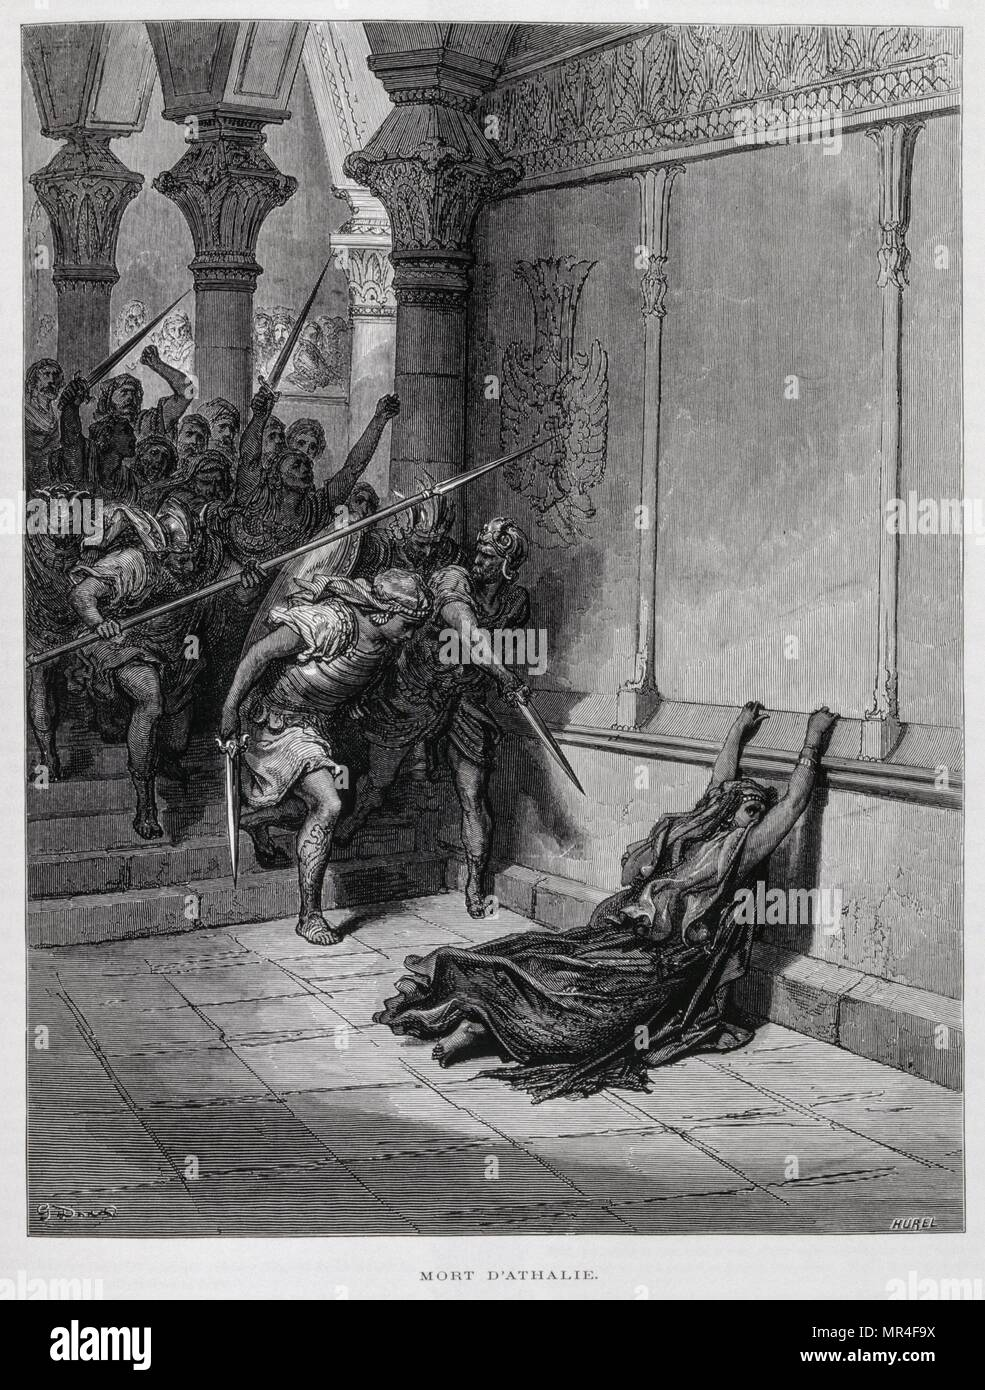 The death of Athalie, from the Second book of Chronicles 23, Illustration from the Dore Bible 1866. In 1866, the French artist and illustrator Gustave Dore (1832–1883), published a series of 241 wood engravings for a new deluxe edition of the 1843 French translation of the Vulgate Bible, popularly known as the Bible de Tours. This new edition was known as La Grande Bible de Tours and its illustrations were immensely successful. Athaliah queen consort of Judah as the wife of King Jehoram, a descendant of King David, and later queen regnant c.841–835 B.C. - Stock Image